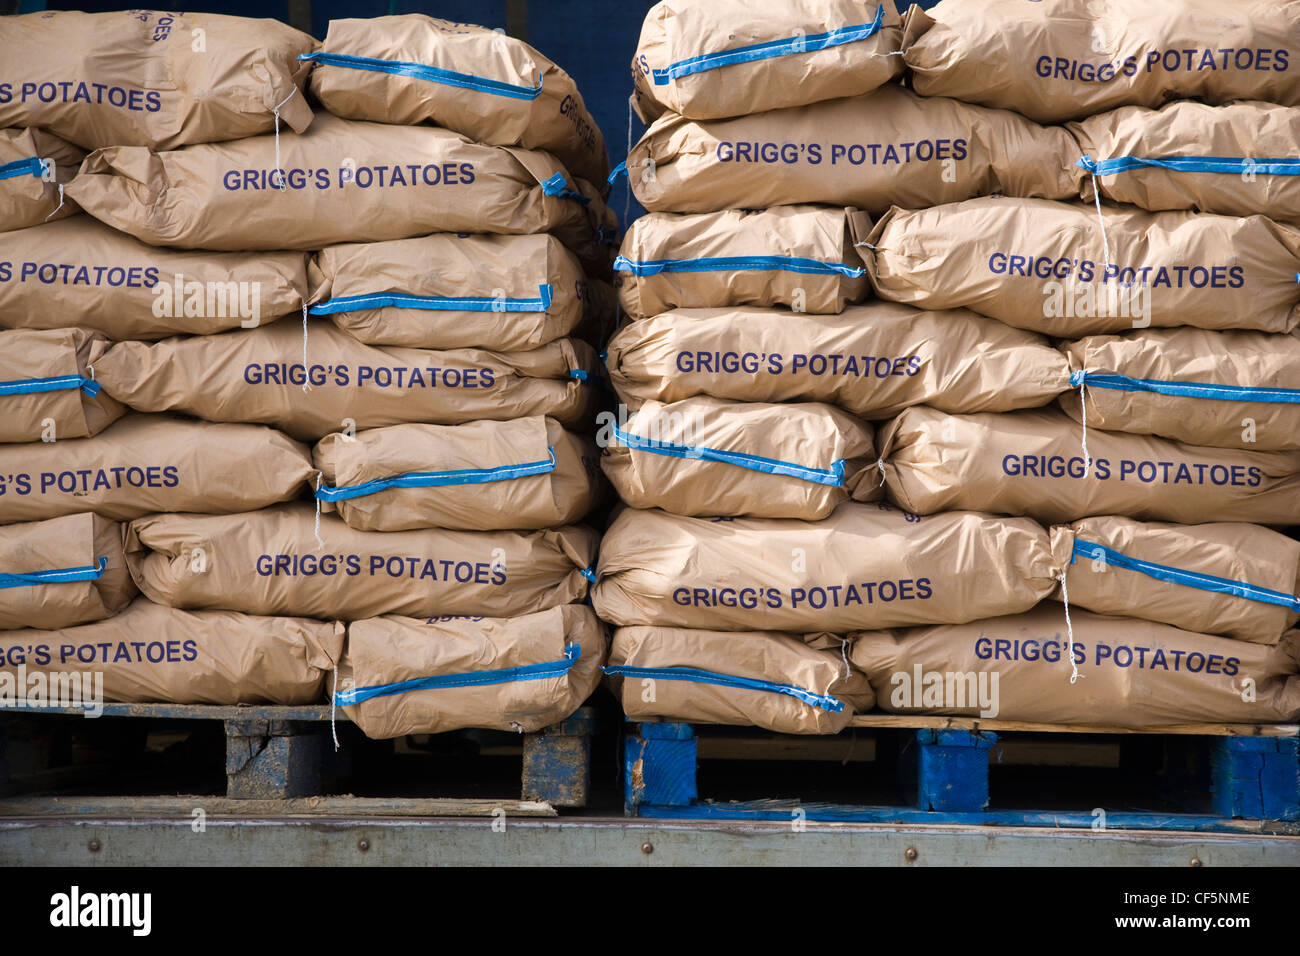 Sacks of Grigg's potatoes stacked on the back of a delivery lorry - Stock Image